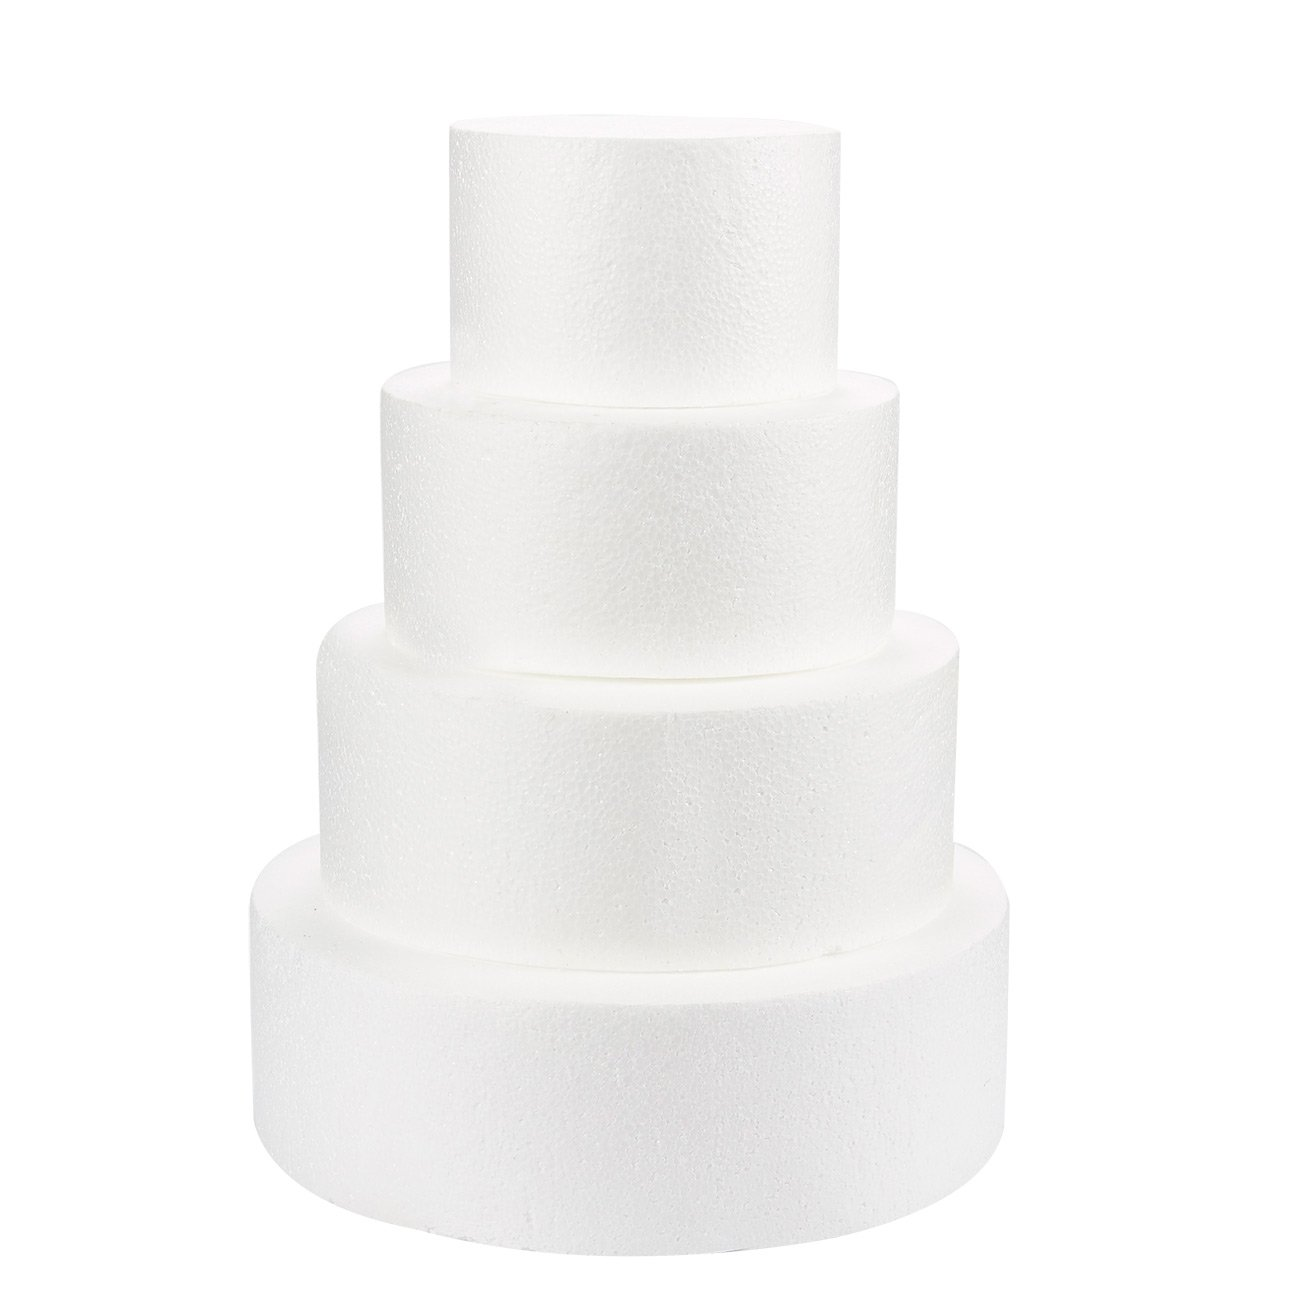 Round Cake Dummy - 4-Piece Polystyrene Foam Dummy Cake for Wedding Display Window, Decorating Competition, 6, 8, 10, 12 inches Diameter, 4 inches Tall